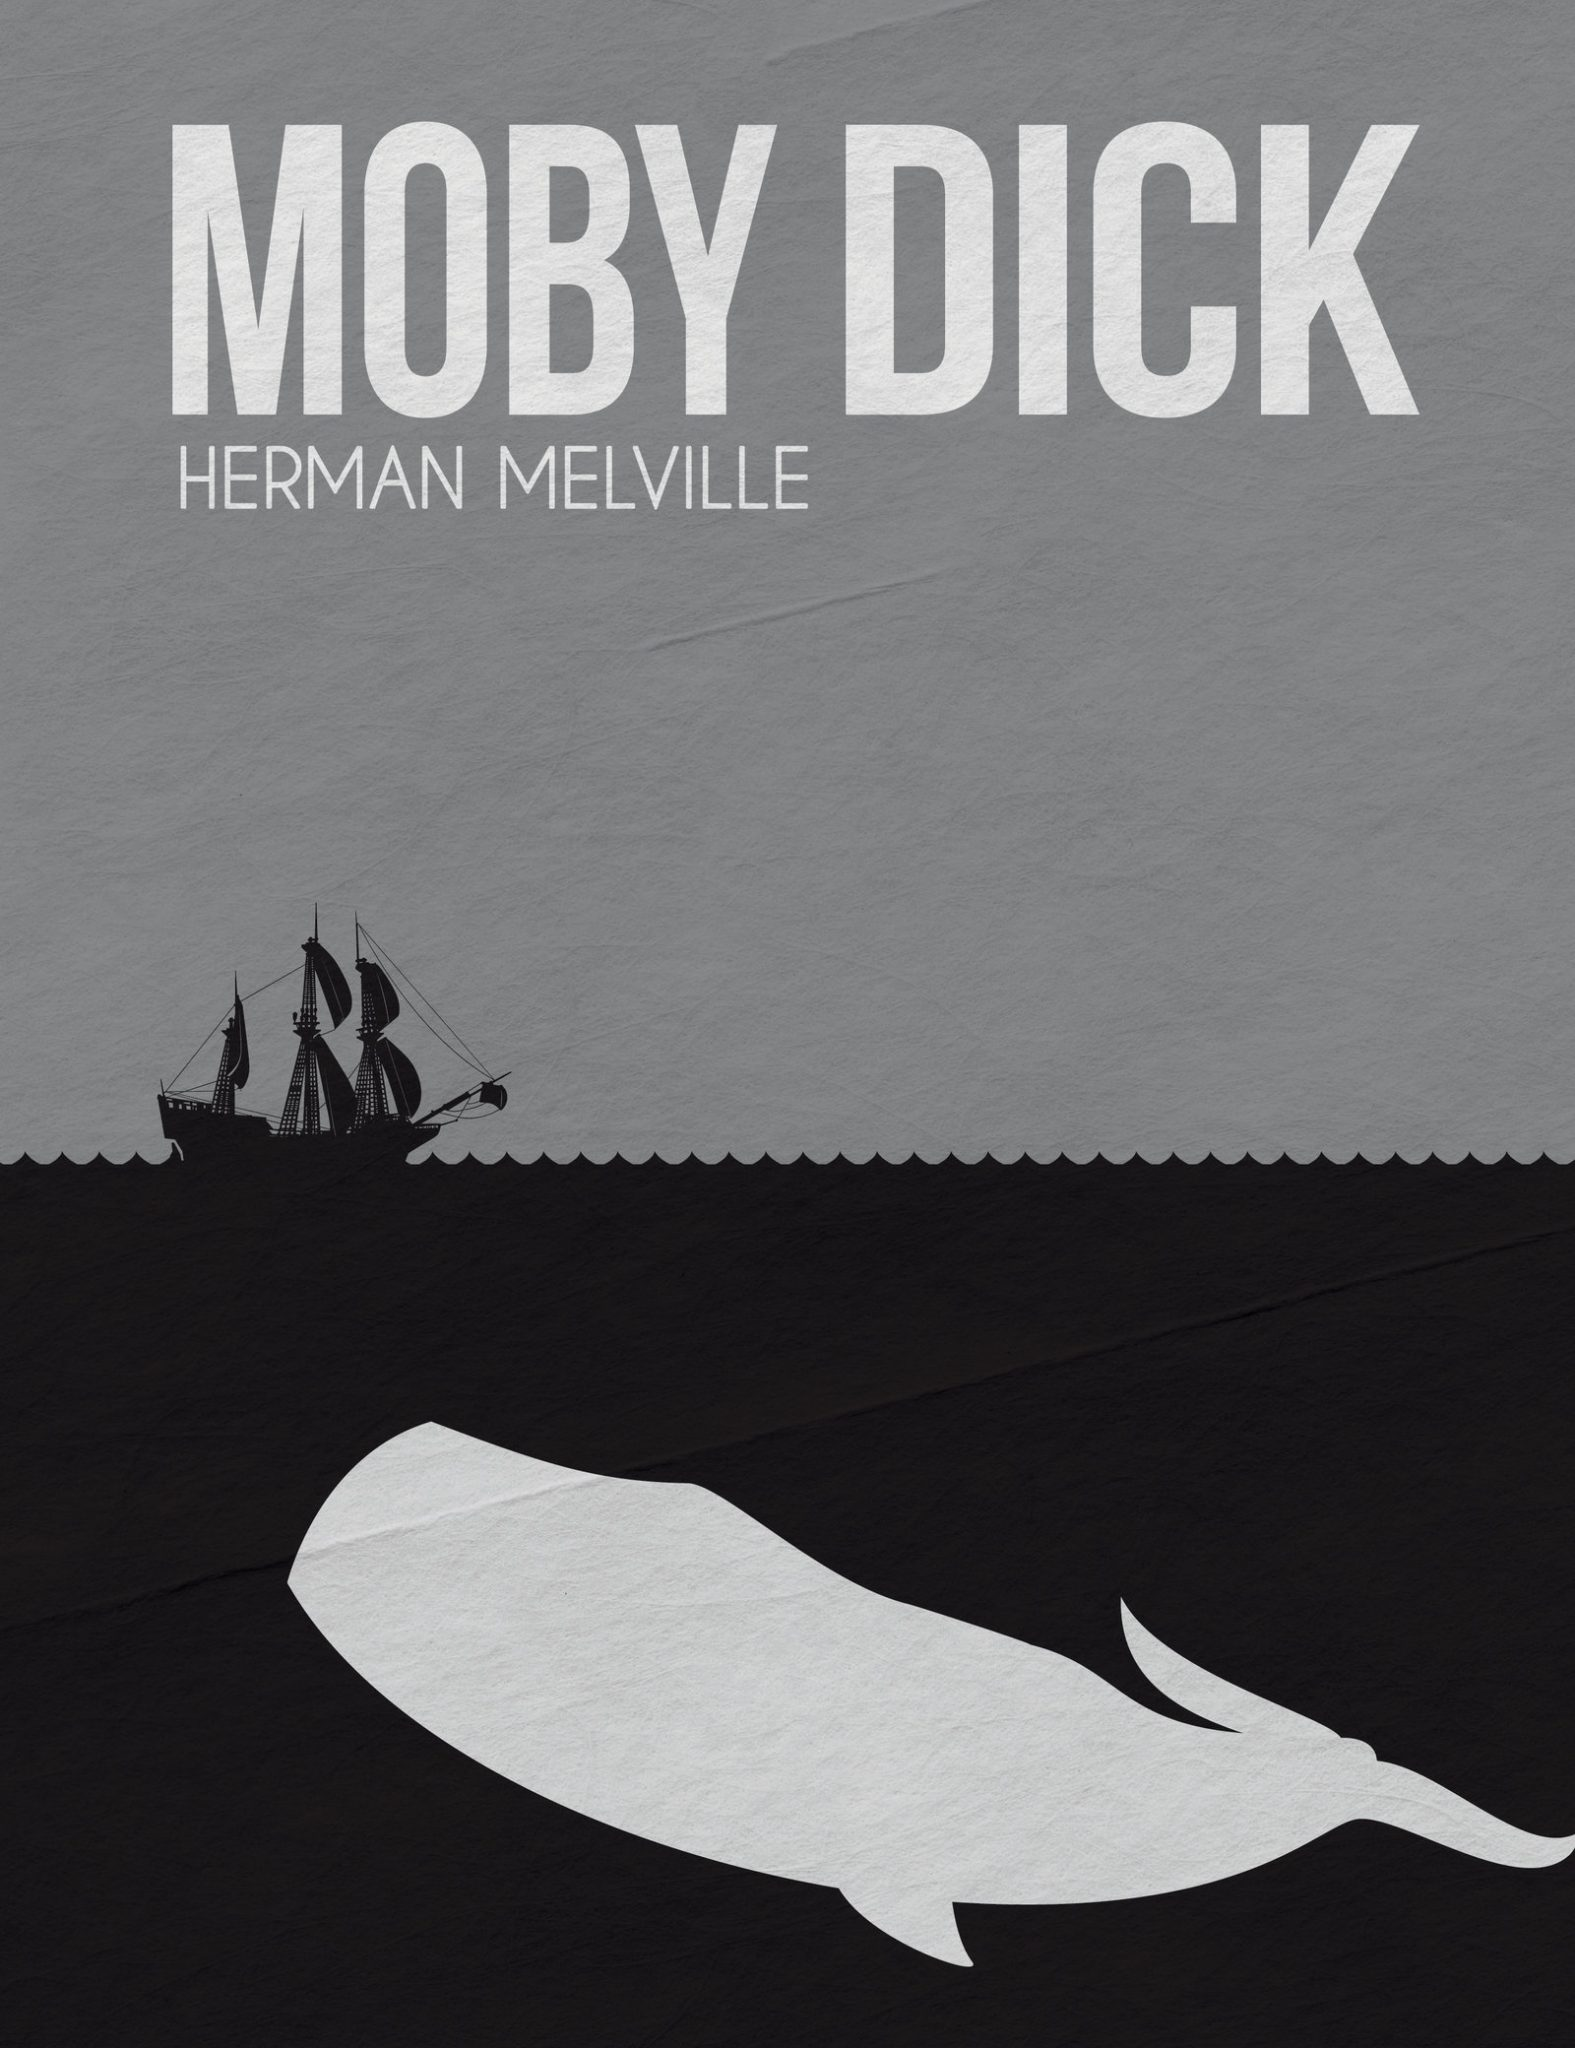 persuasion in moby dick by herman melville